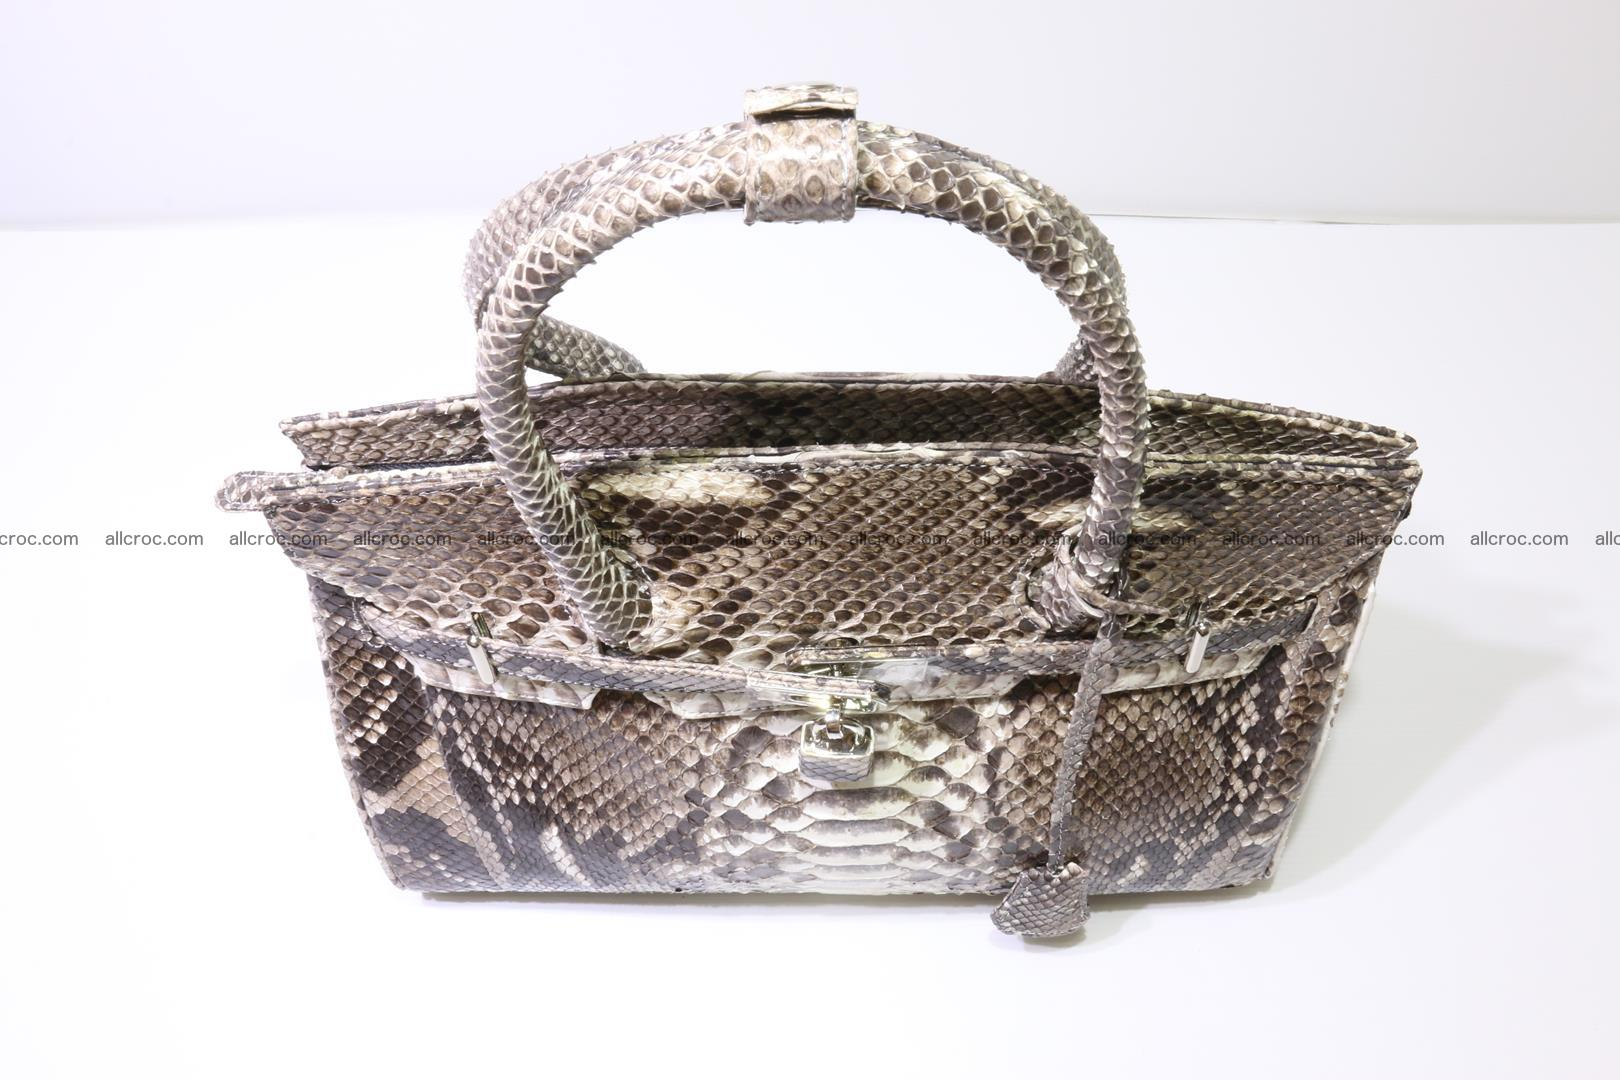 Python skin women's handbag replica of Birkin 211 Foto 6